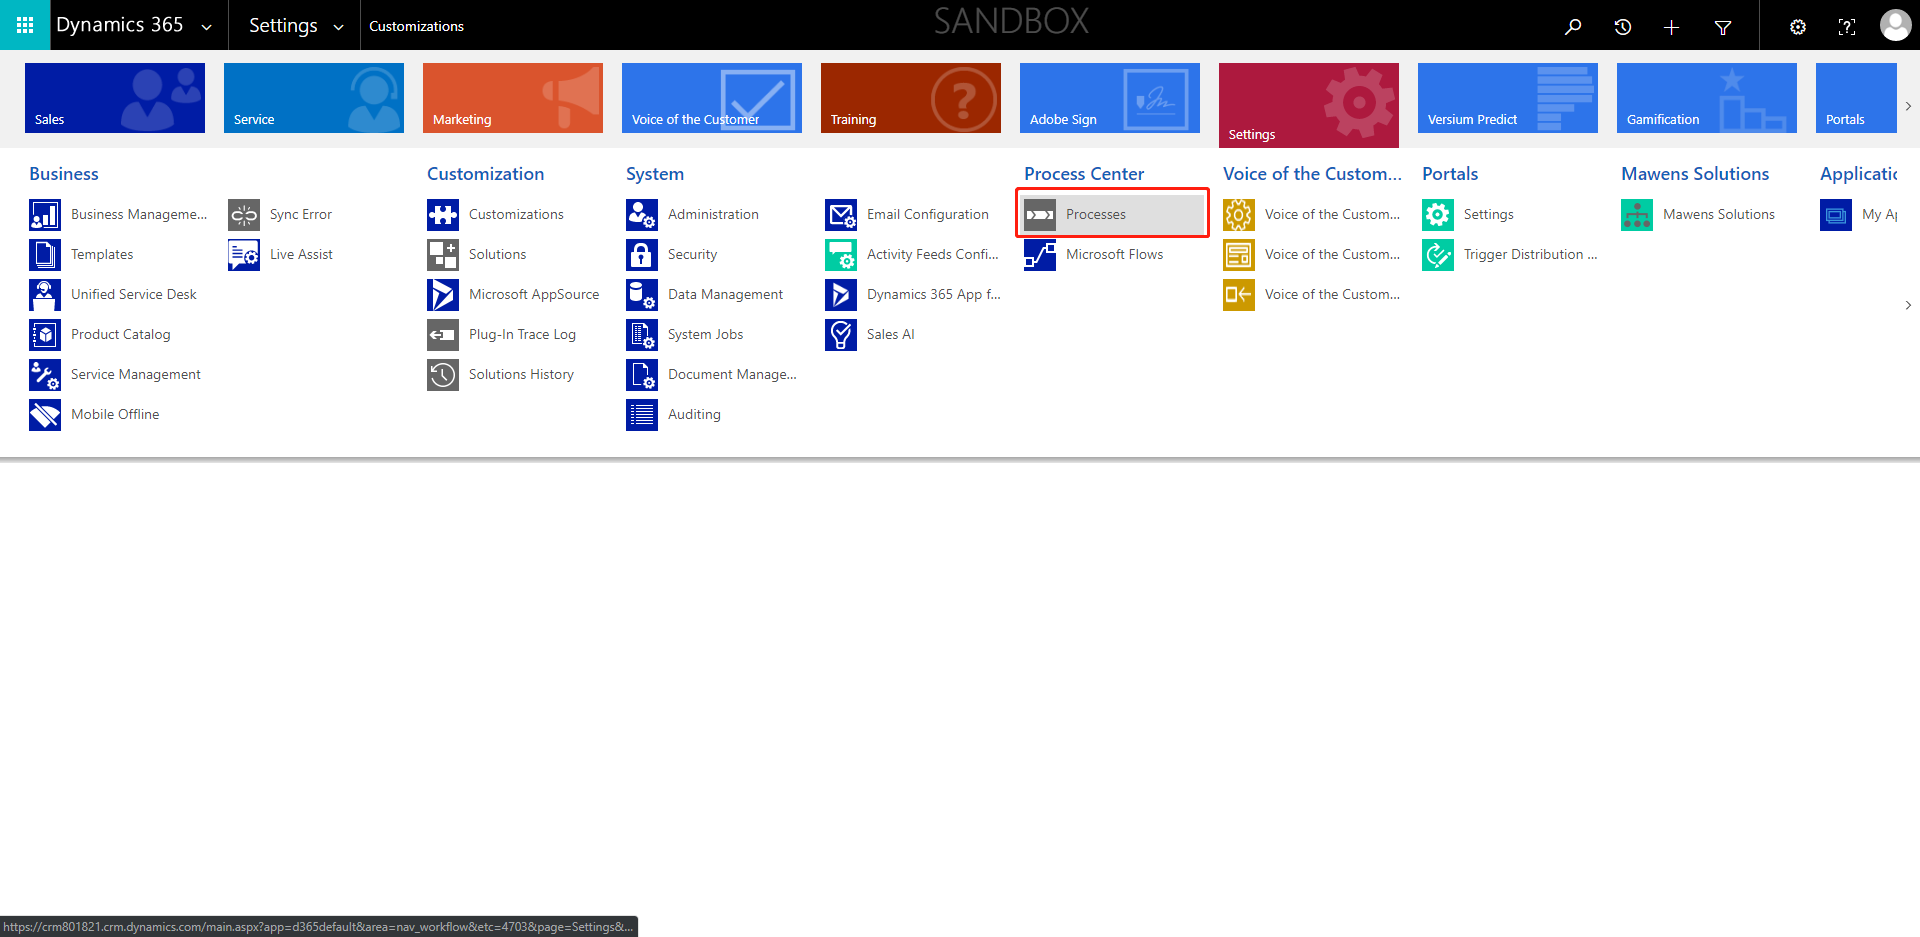 Business Processes delete - Dynamics 365 for Customer